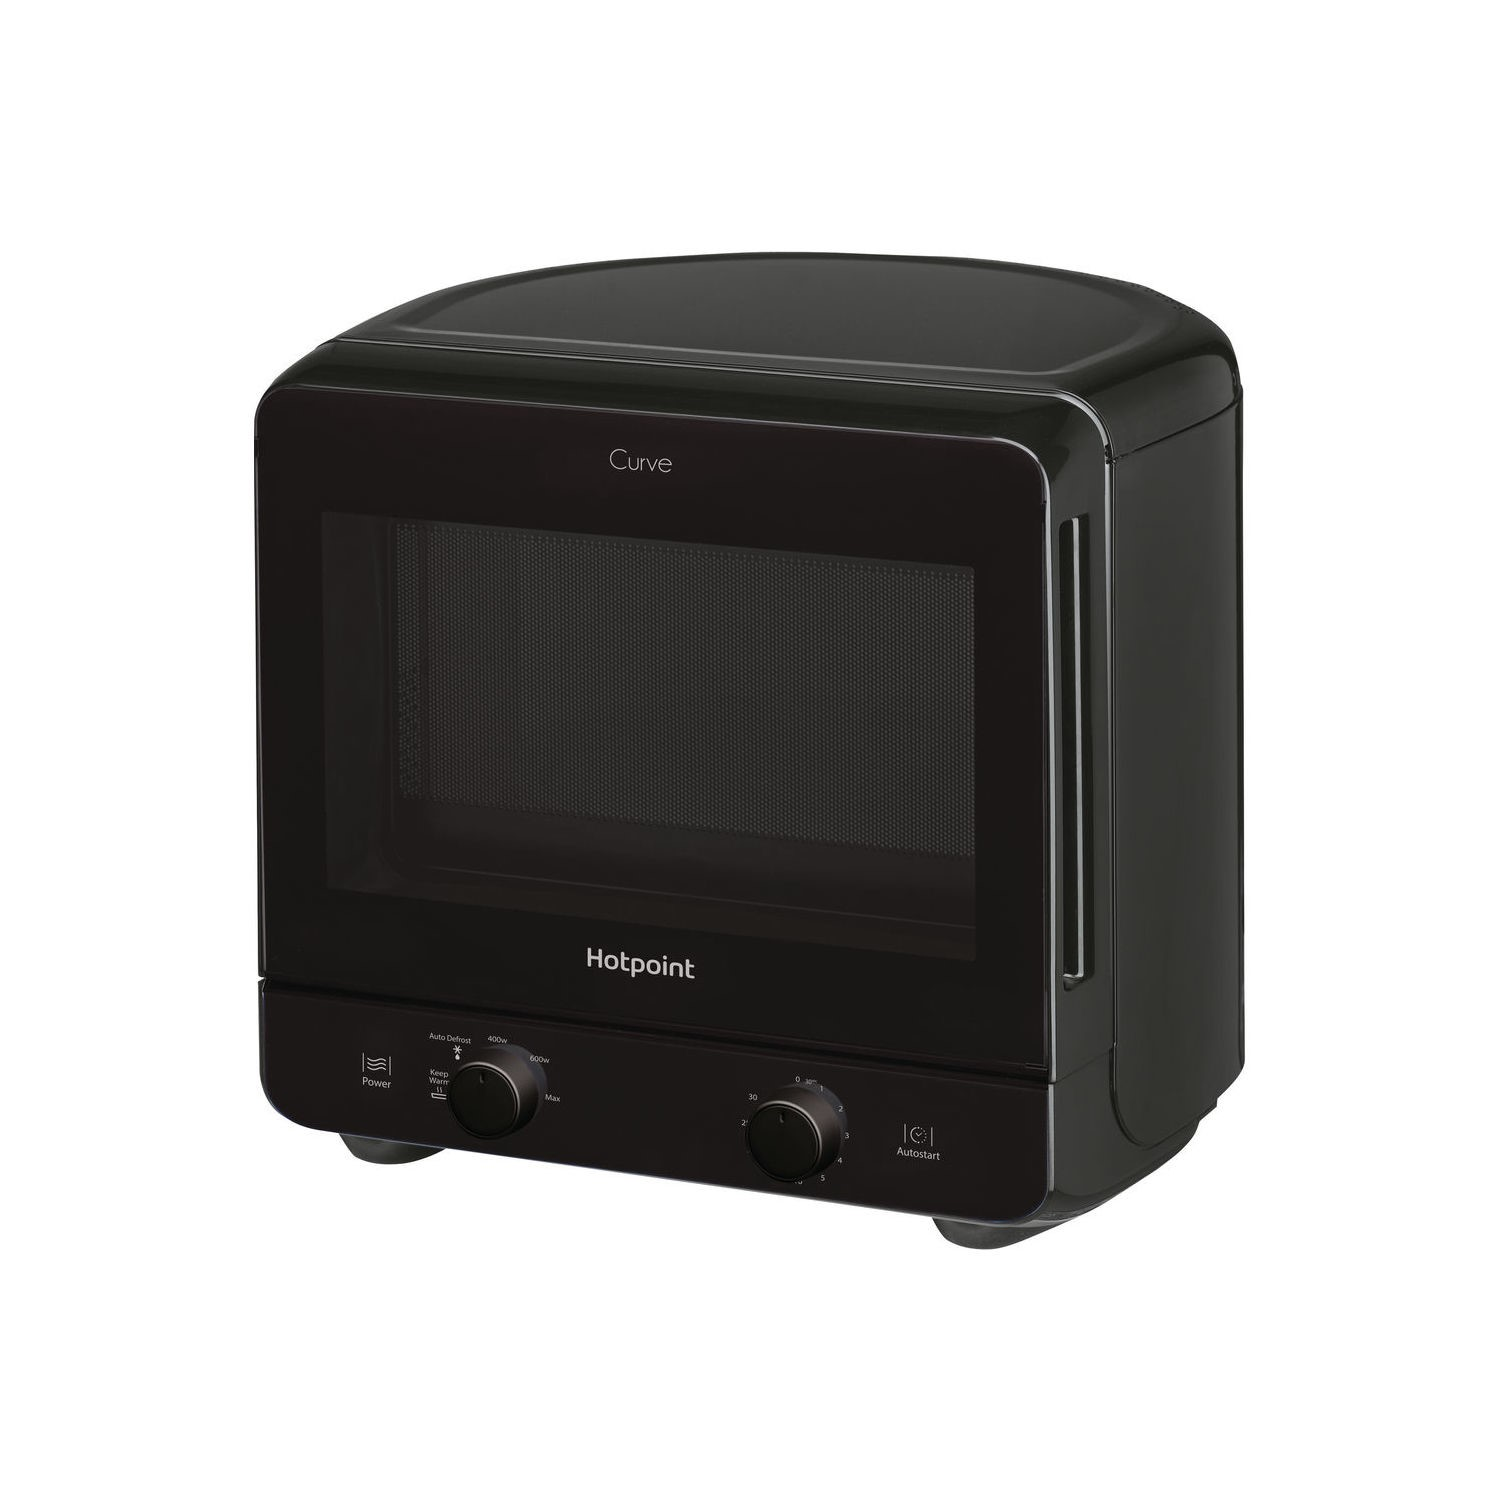 hotpoint mwh1311b 13l 700w freestanding curve microwave. Black Bedroom Furniture Sets. Home Design Ideas